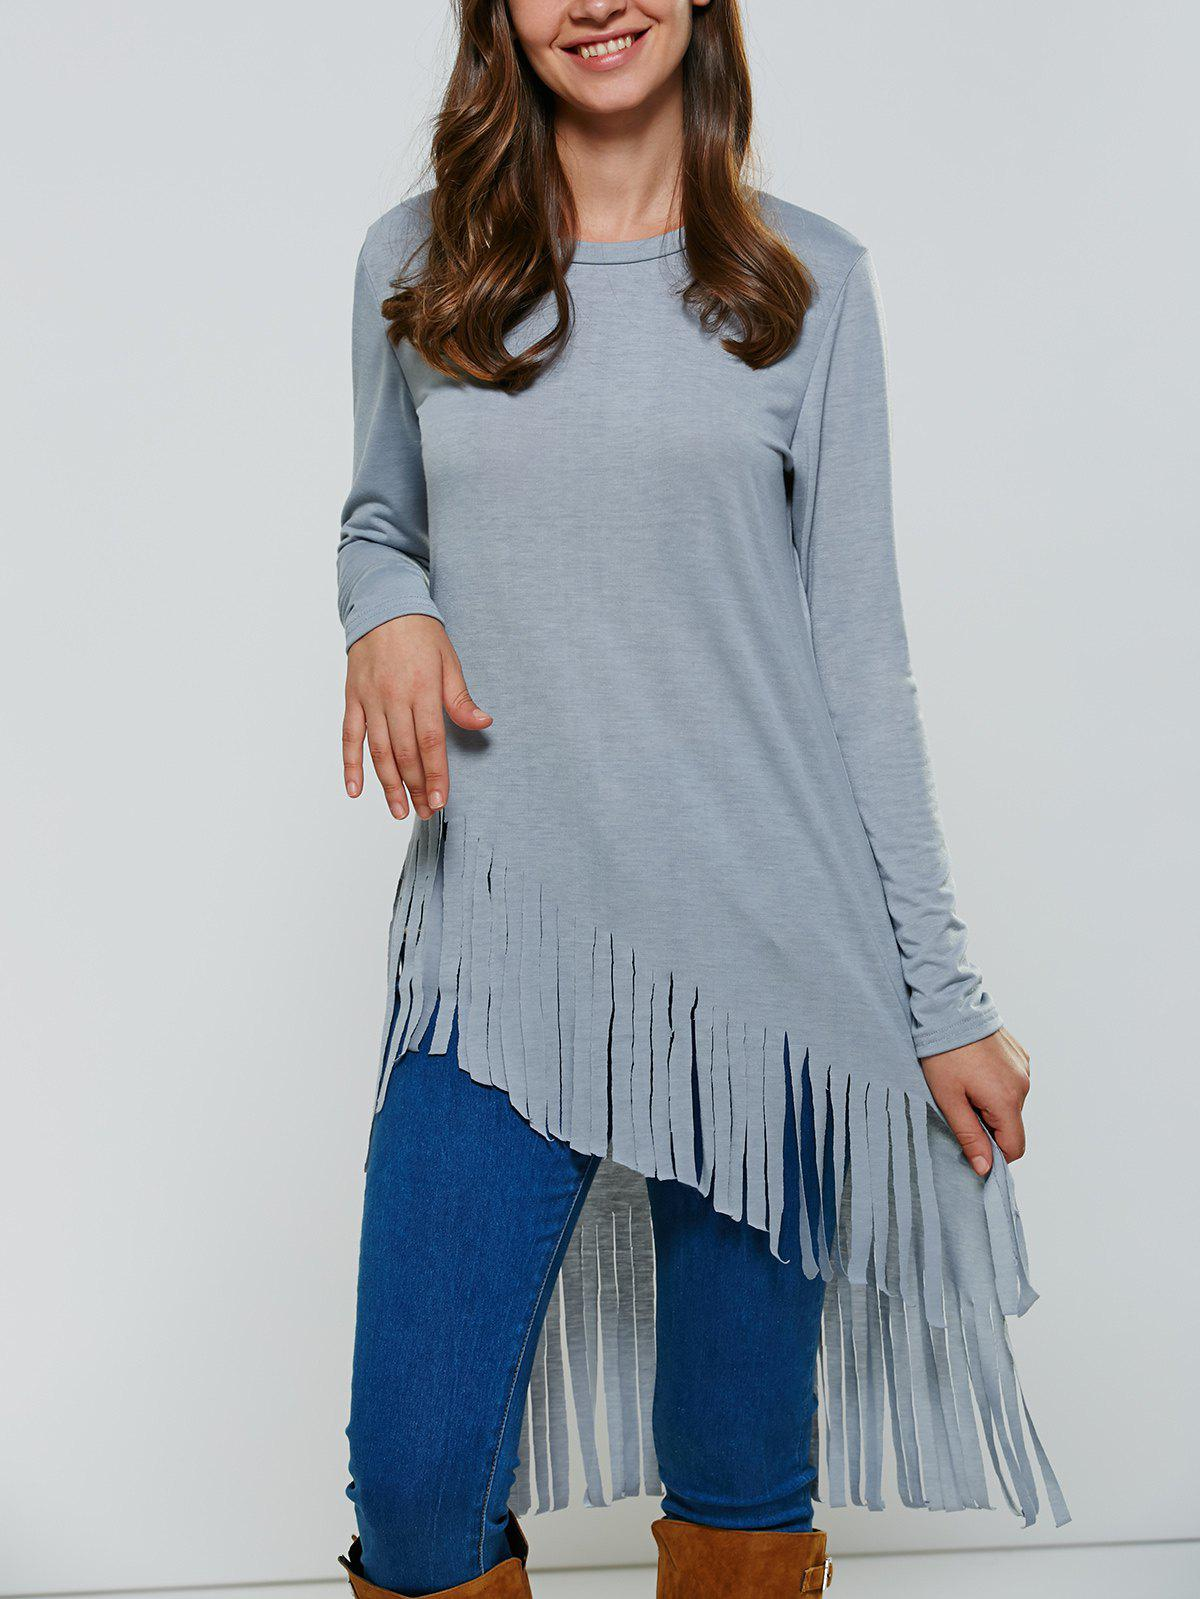 Fringed High Low T-ShirtWomen<br><br><br>Size: S<br>Color: BLUE GRAY